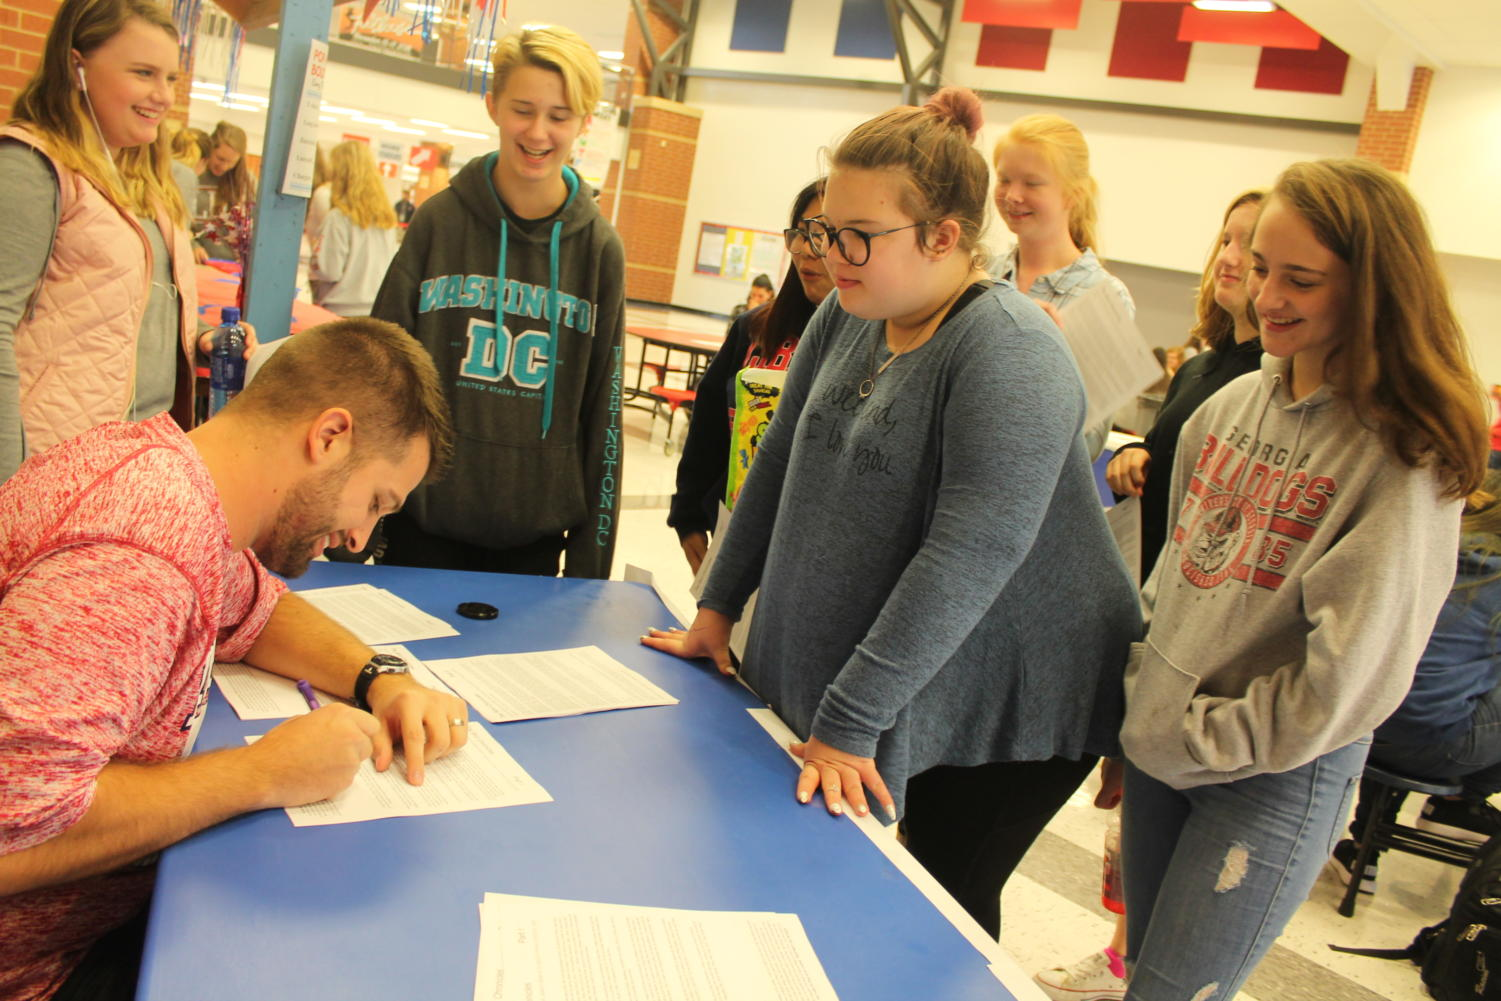 Olivia Overton and Kiersten Baumgartner lined up for an autograph from Mr. Schaper's turkey campaign.